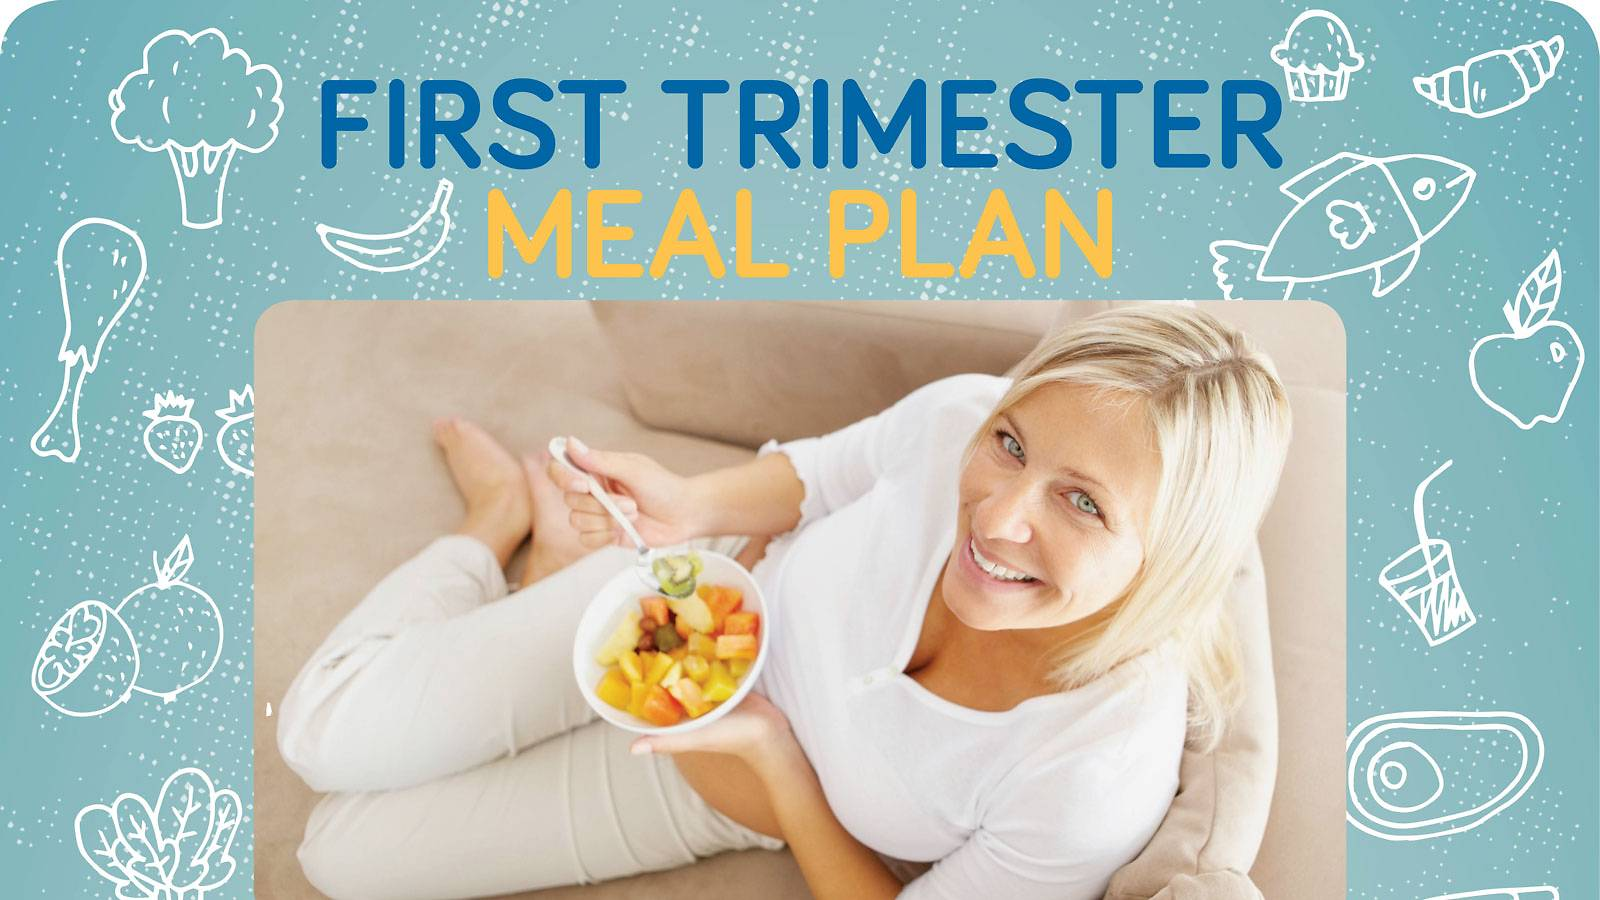 Pregnancy-diet-meal-plan-First-trimester-1